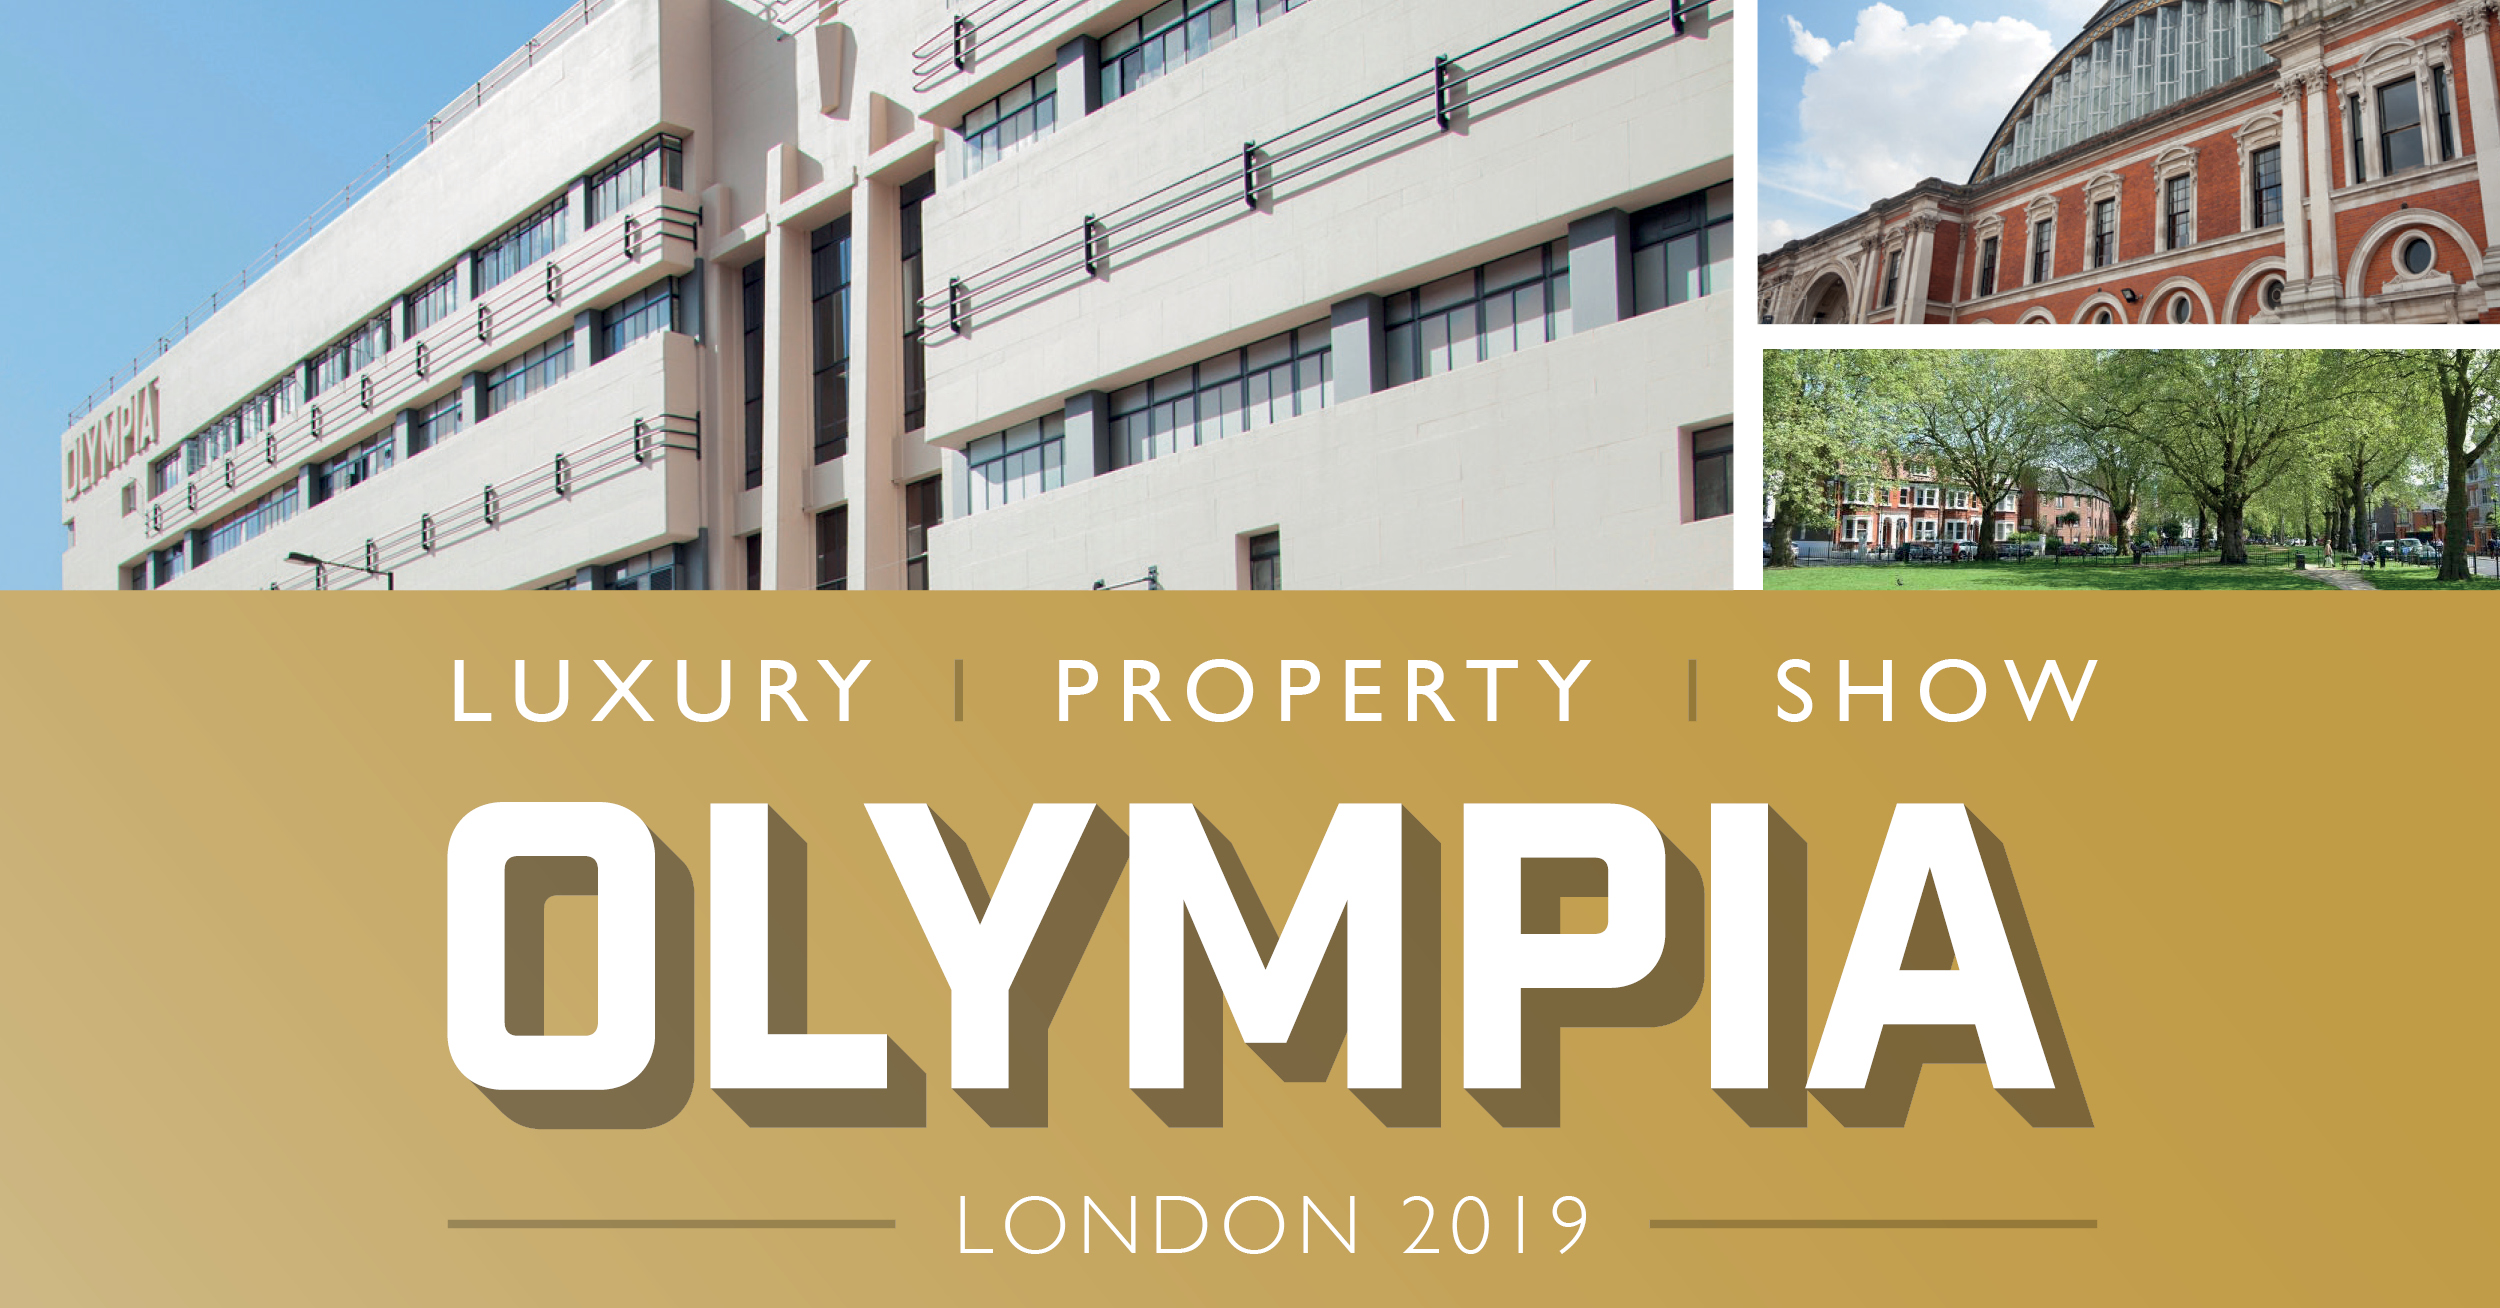 Luxury | Property | Show - Olympia London 2019